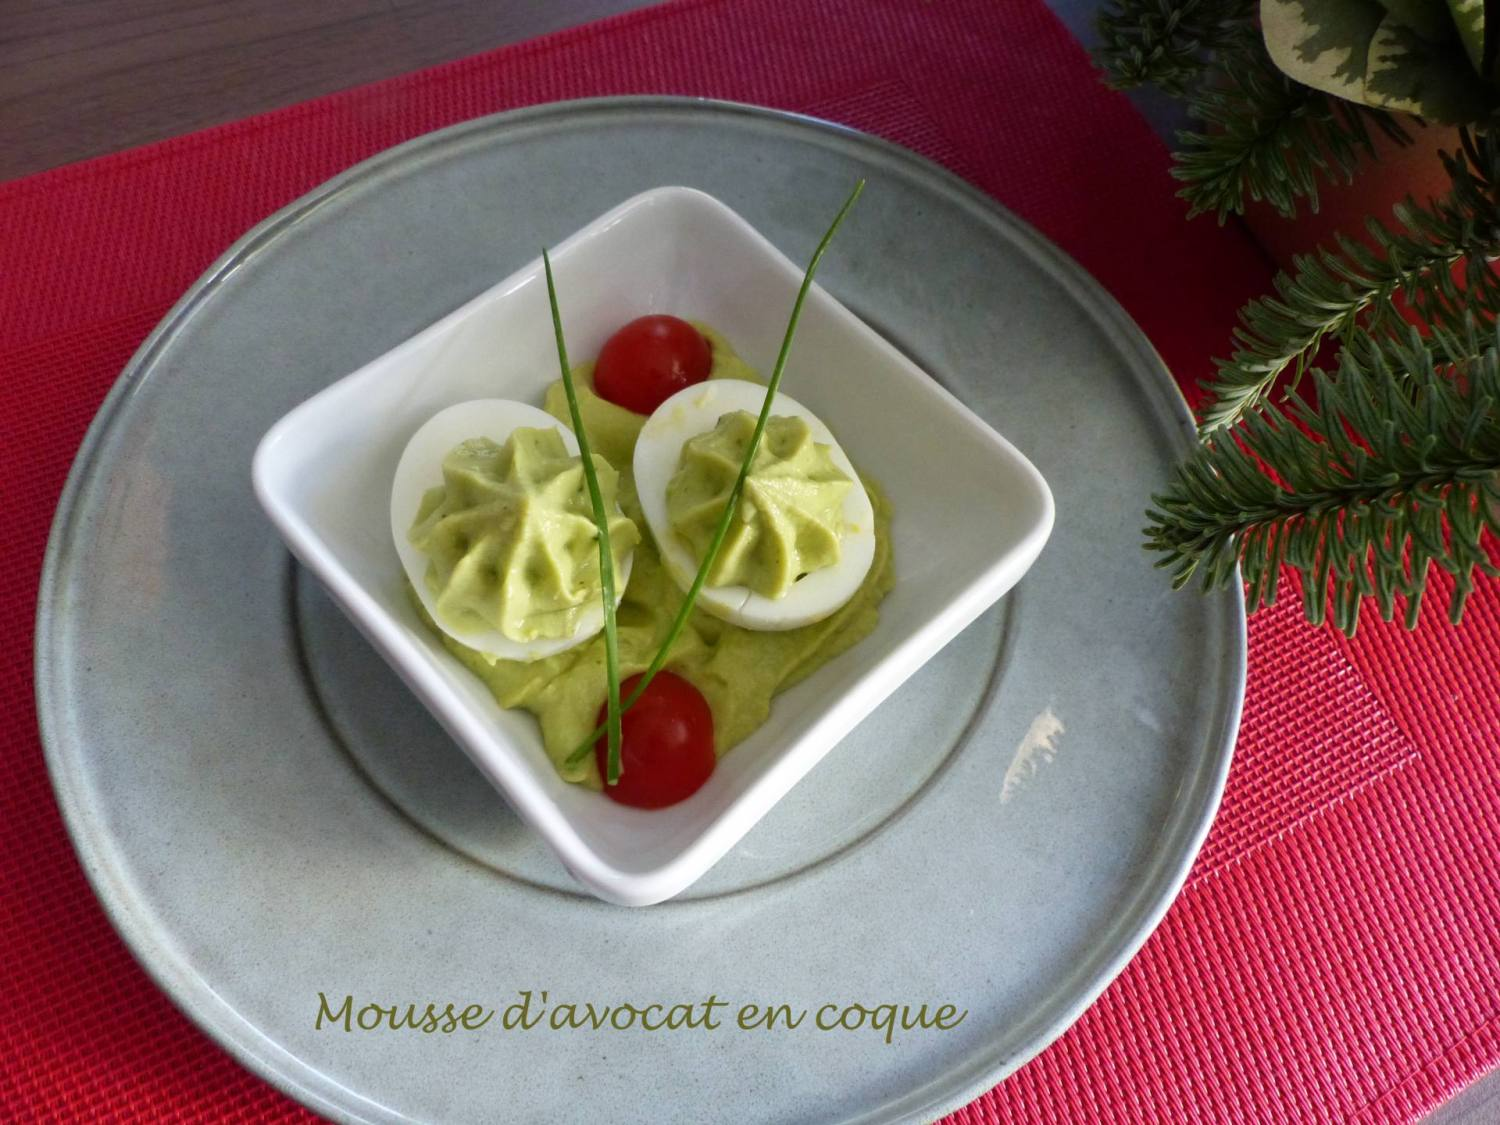 Mousse d'avocat en coque P1220098 R